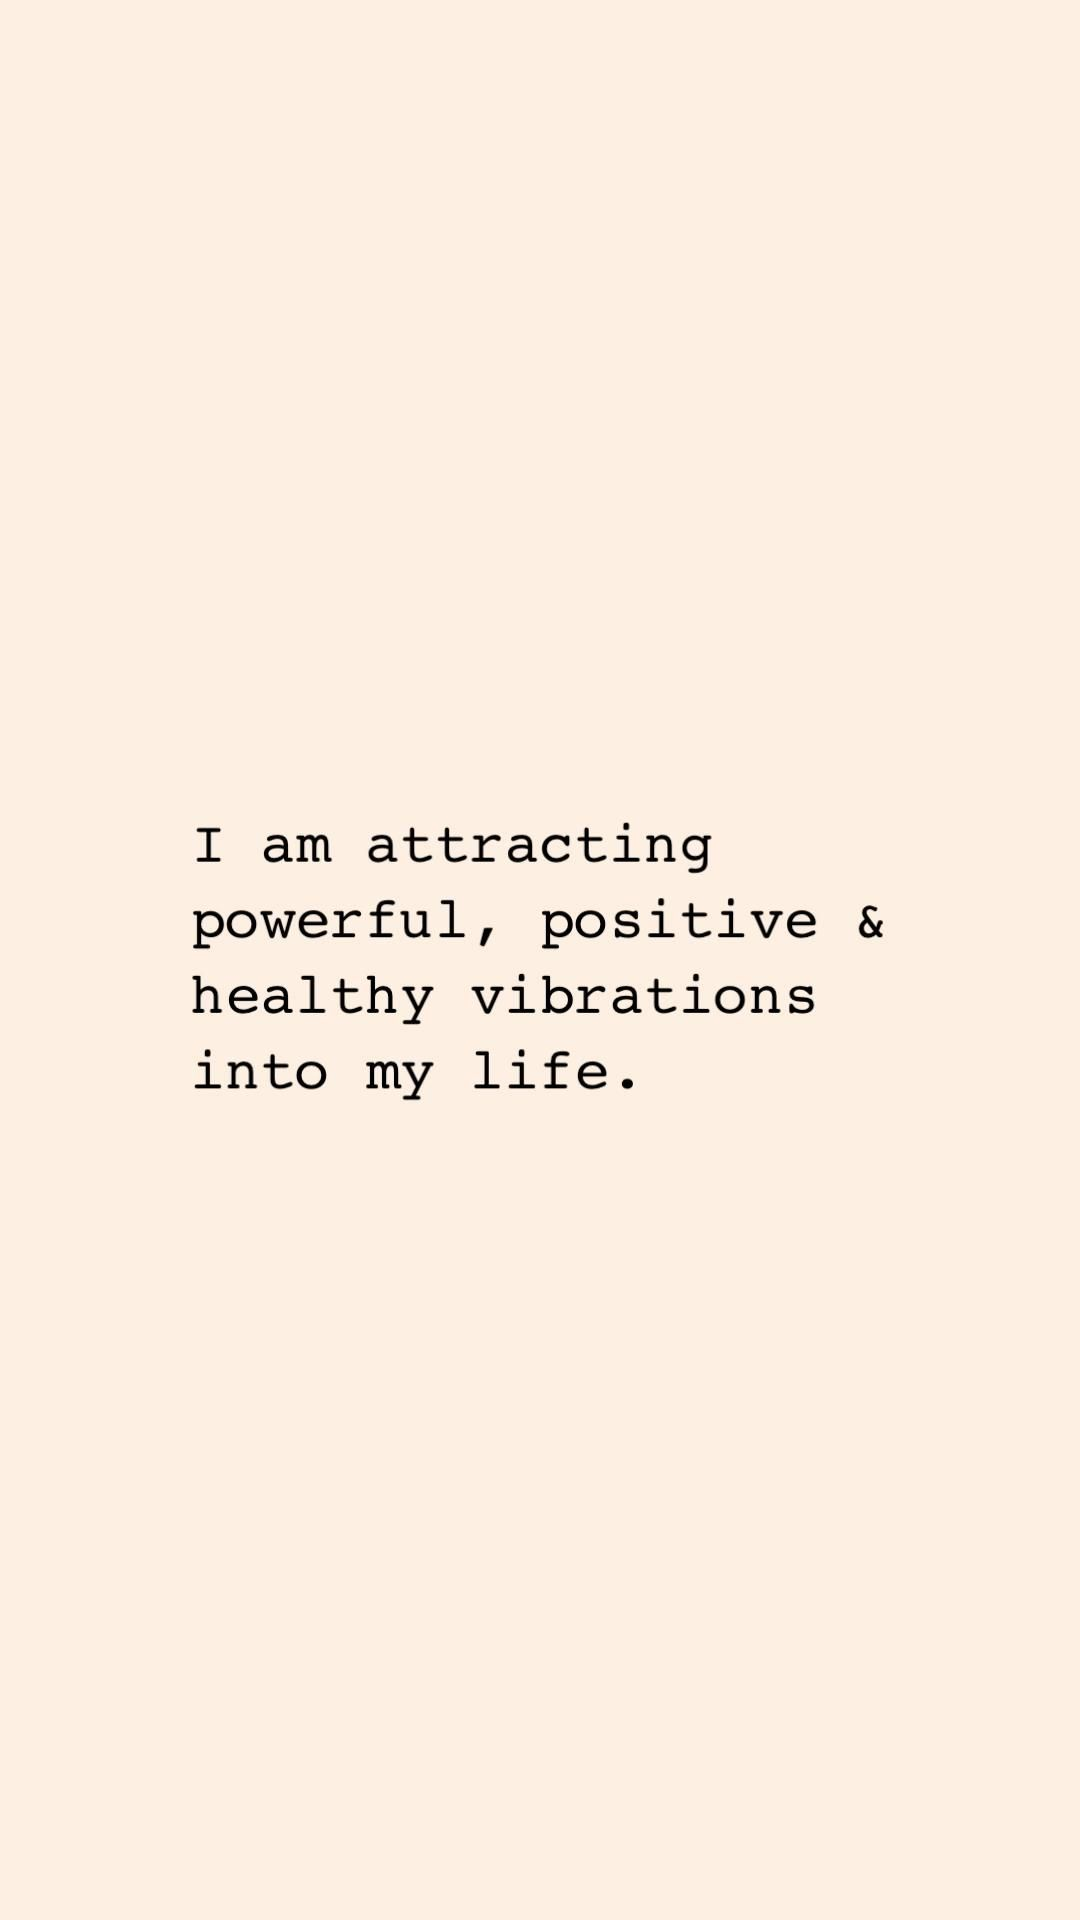 Affirmation of the day.